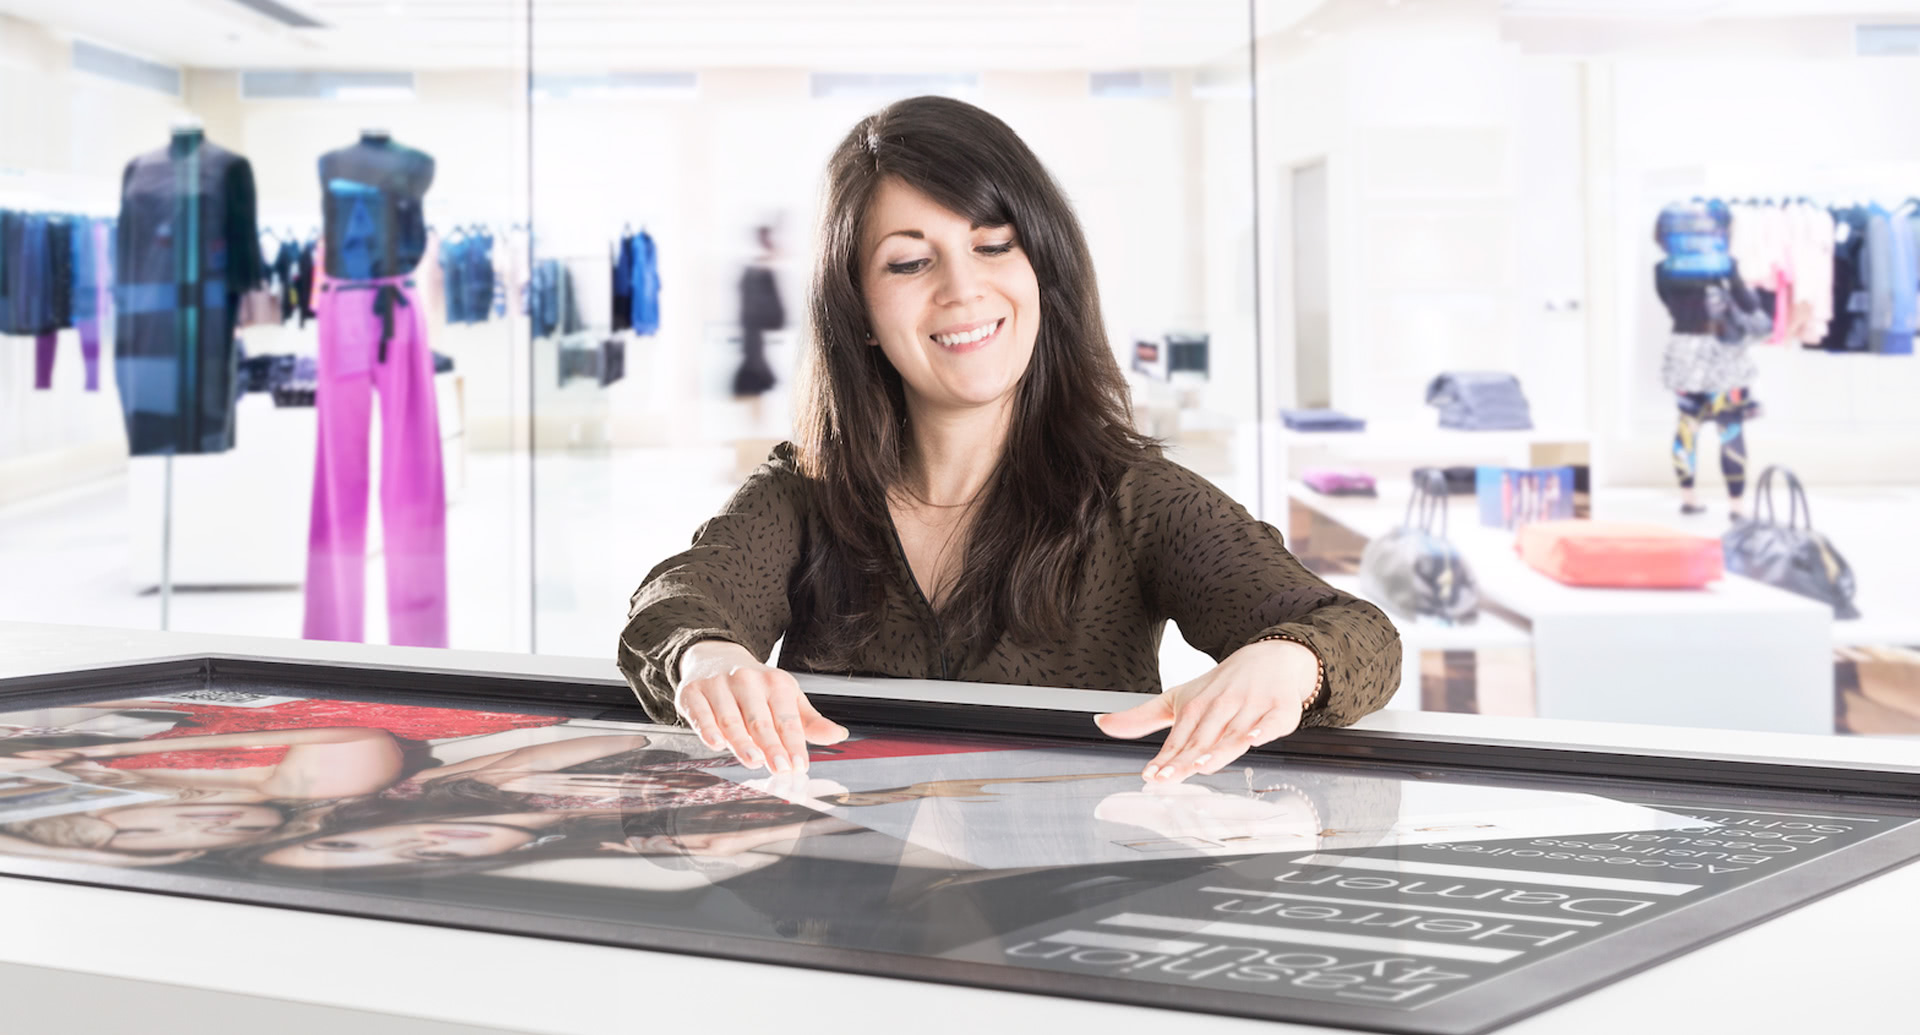 Beispiele Digital Signage: Multitouch